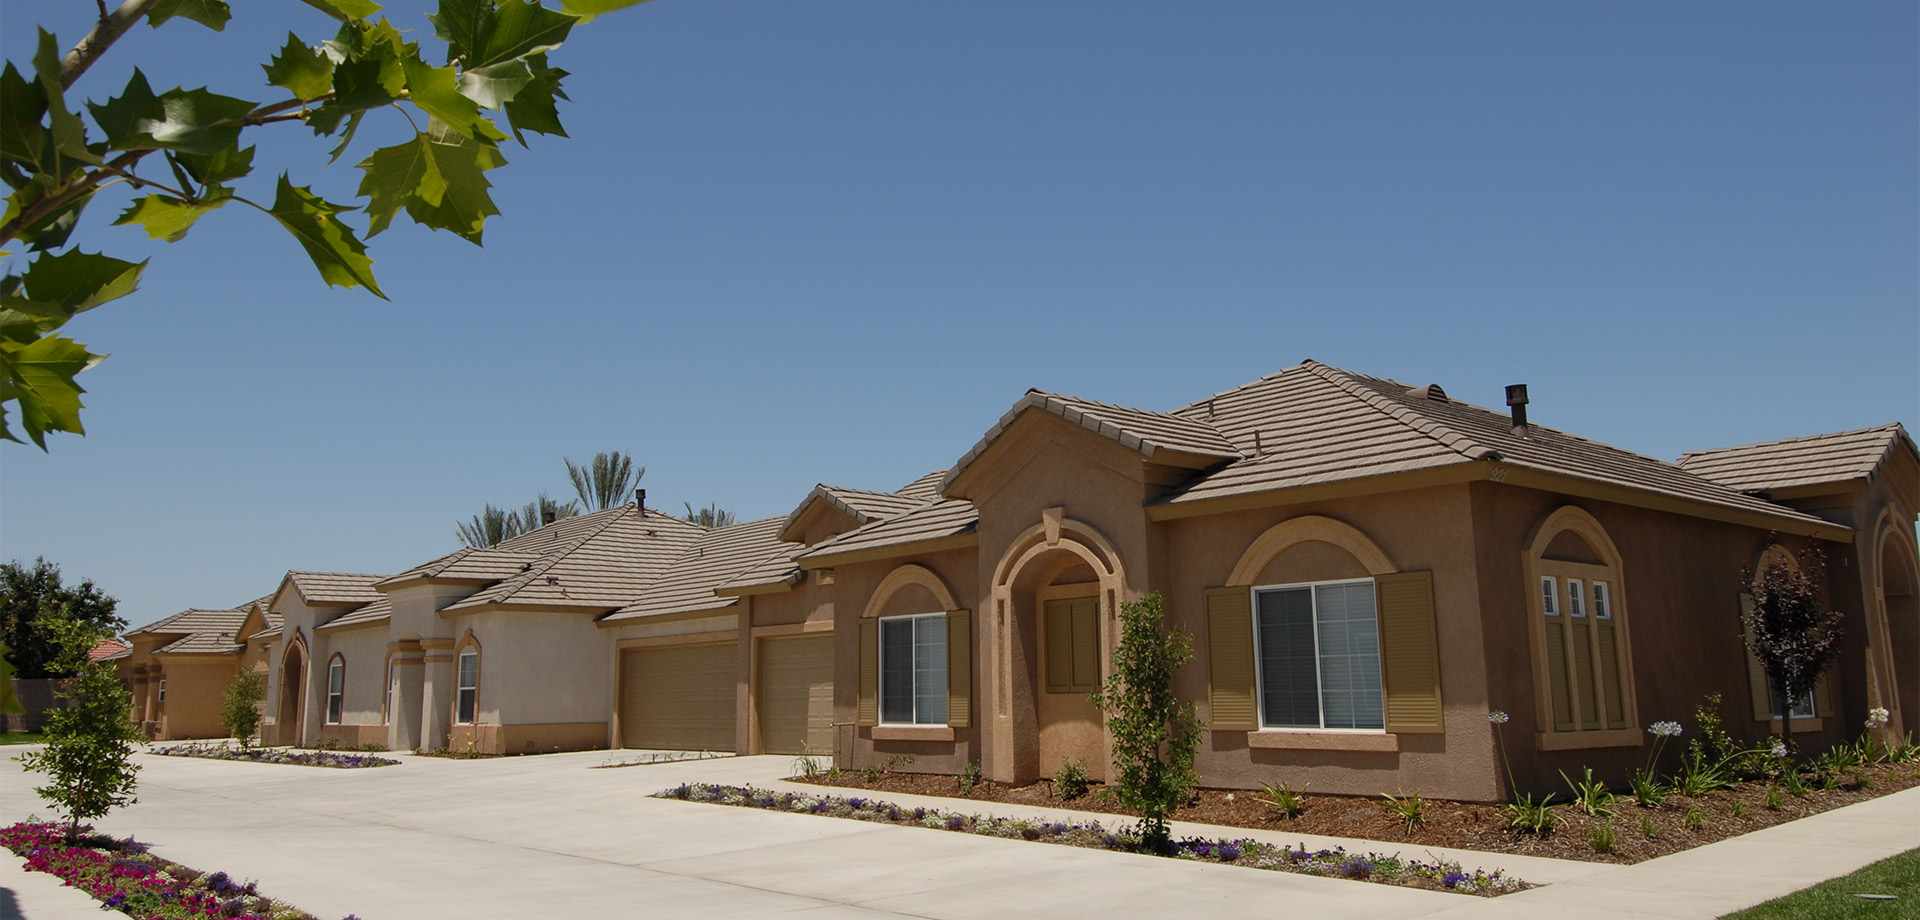 New Homes For Sale In Garden Grove Ca Garden Grove Real Estate Homes For Sale Realtyonegroup